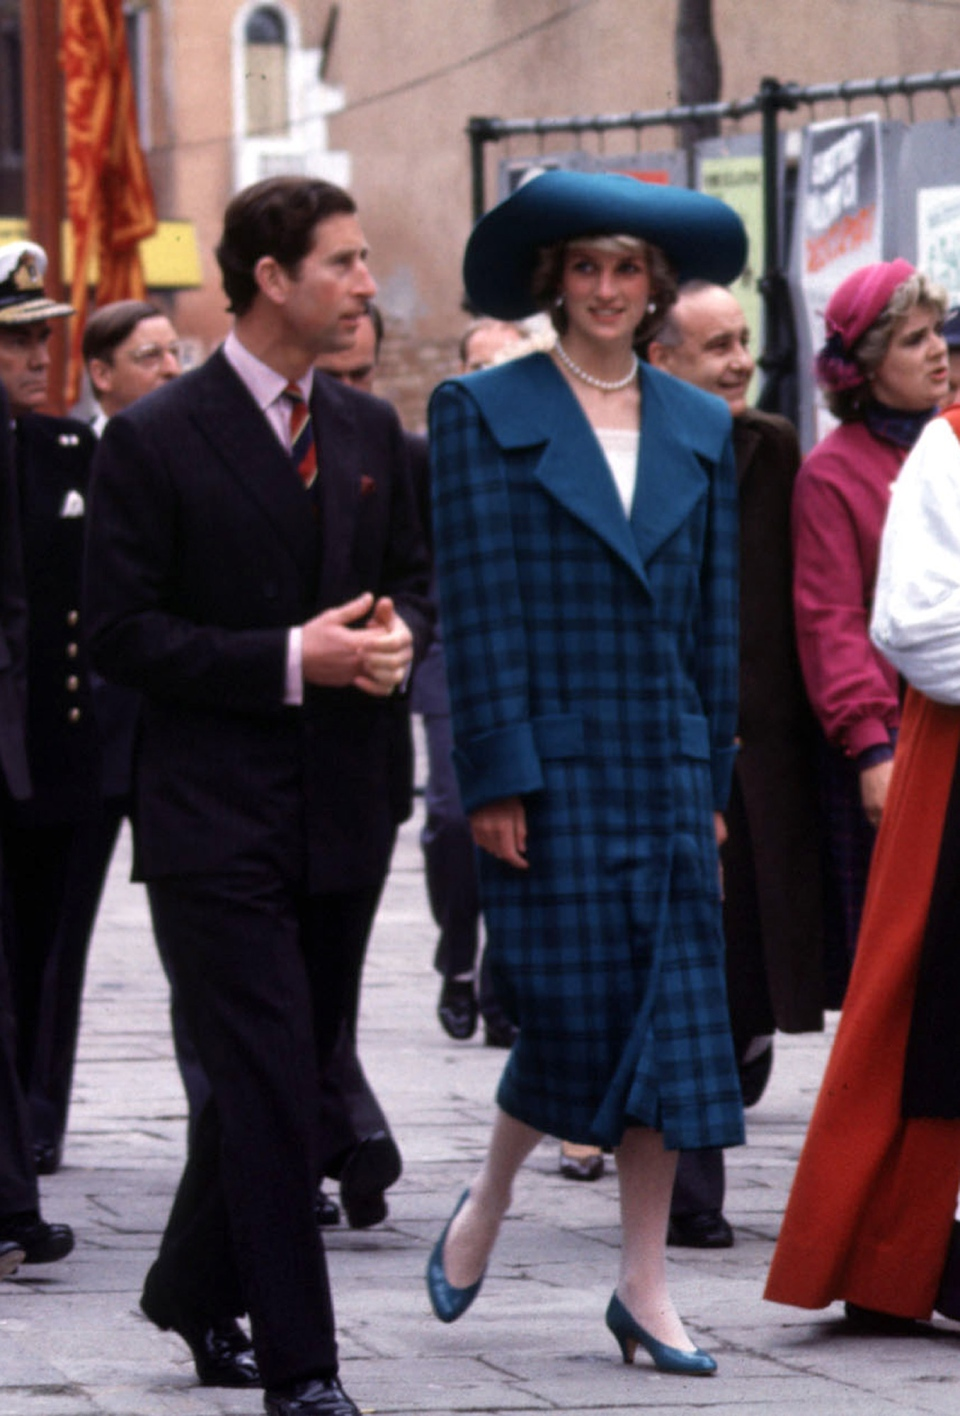 FILE - In this May 5, 1985 file photo, Diana, Princess of Wales wears a blue tartan Emanuel suit during an official visit to Venice, Italy, with Britain's Prince Chalres. (/PA via AP)